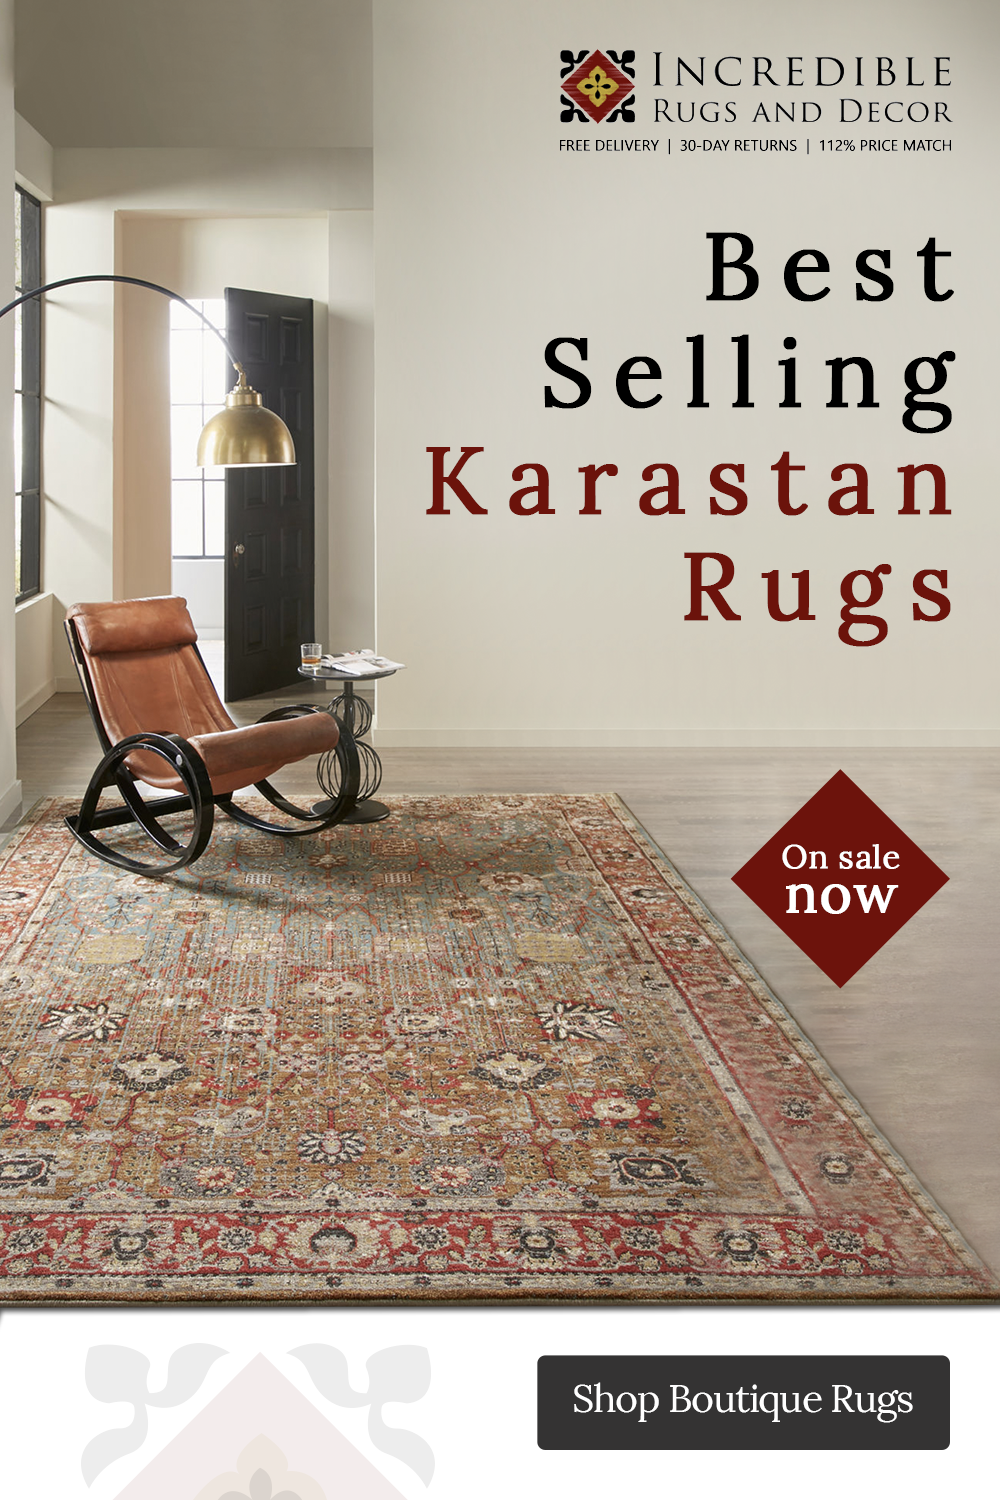 Rug Retailer Who Prides Itself